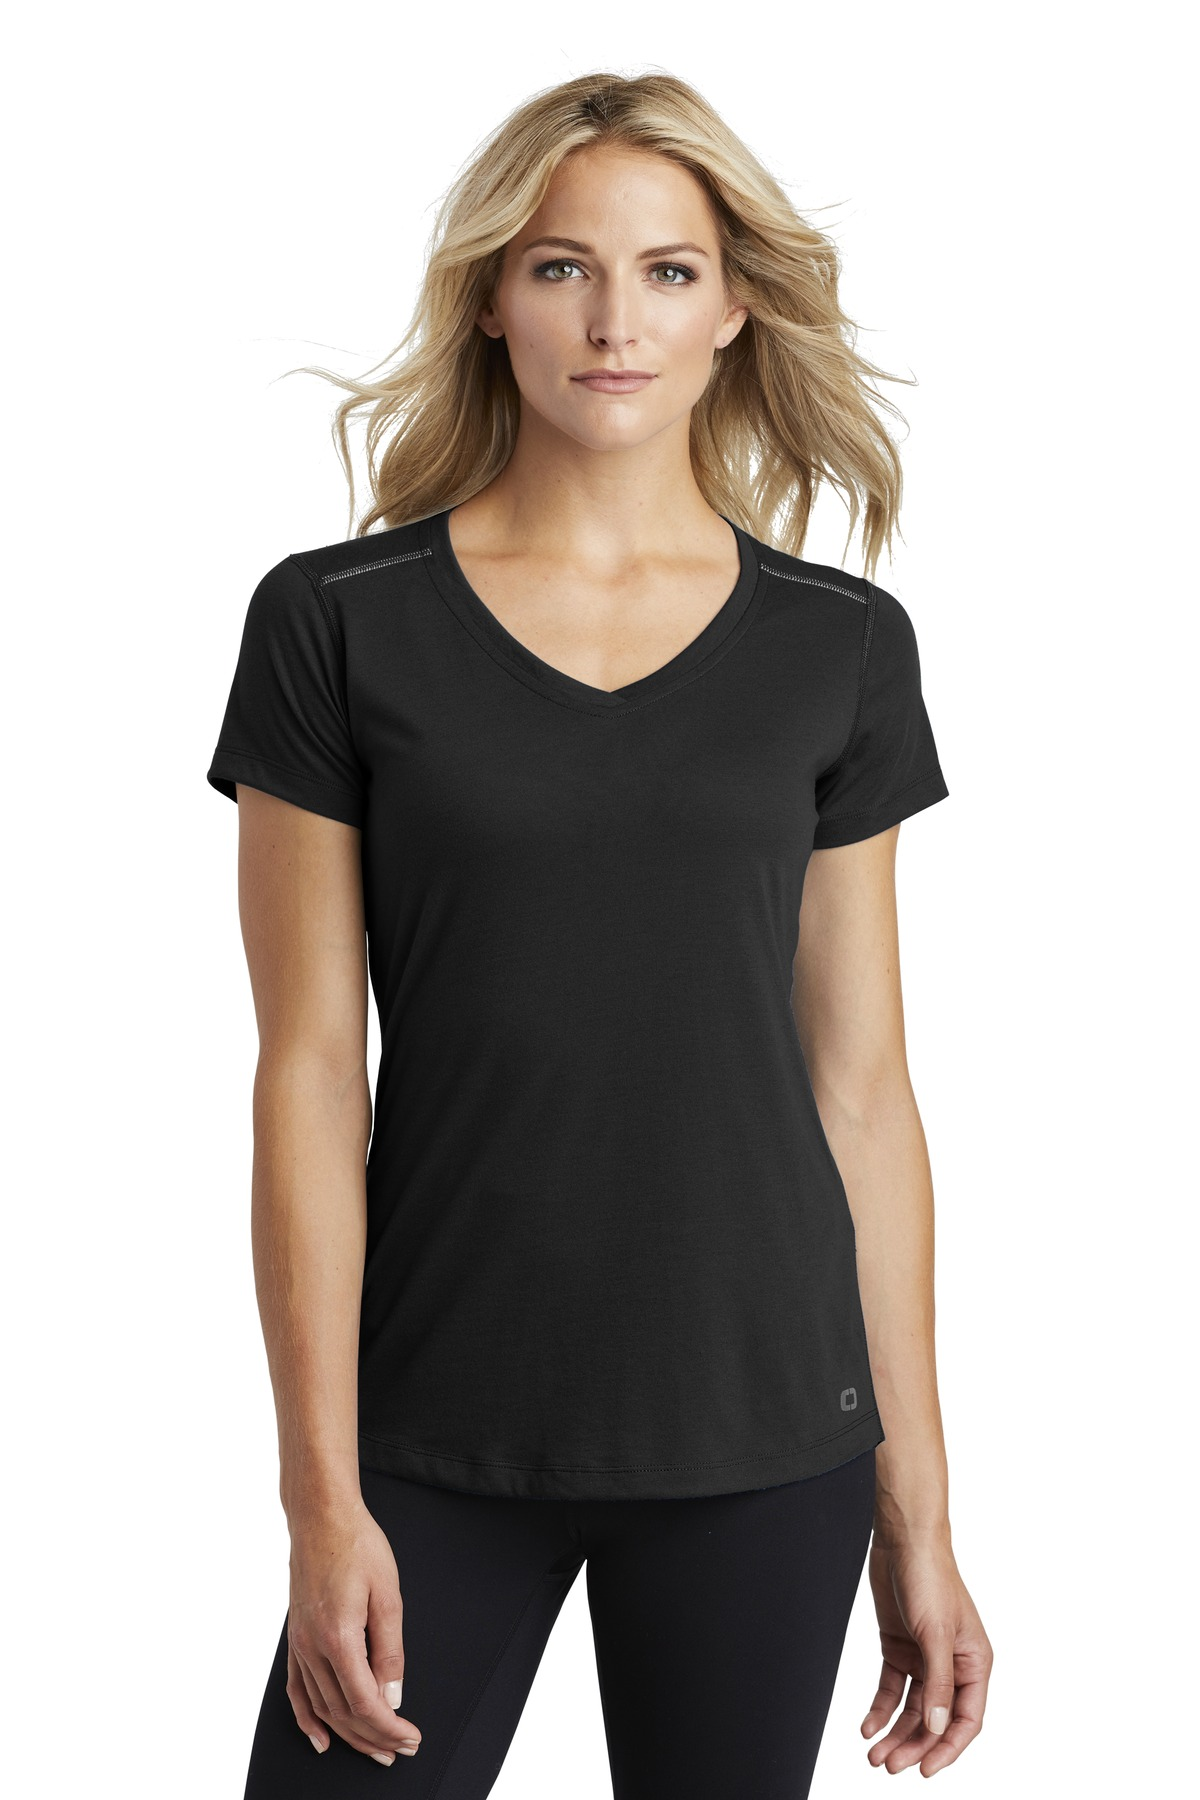 OGIO  ®  ENDURANCE Ladies Peak V-Neck Tee. LOE337 - Blacktop